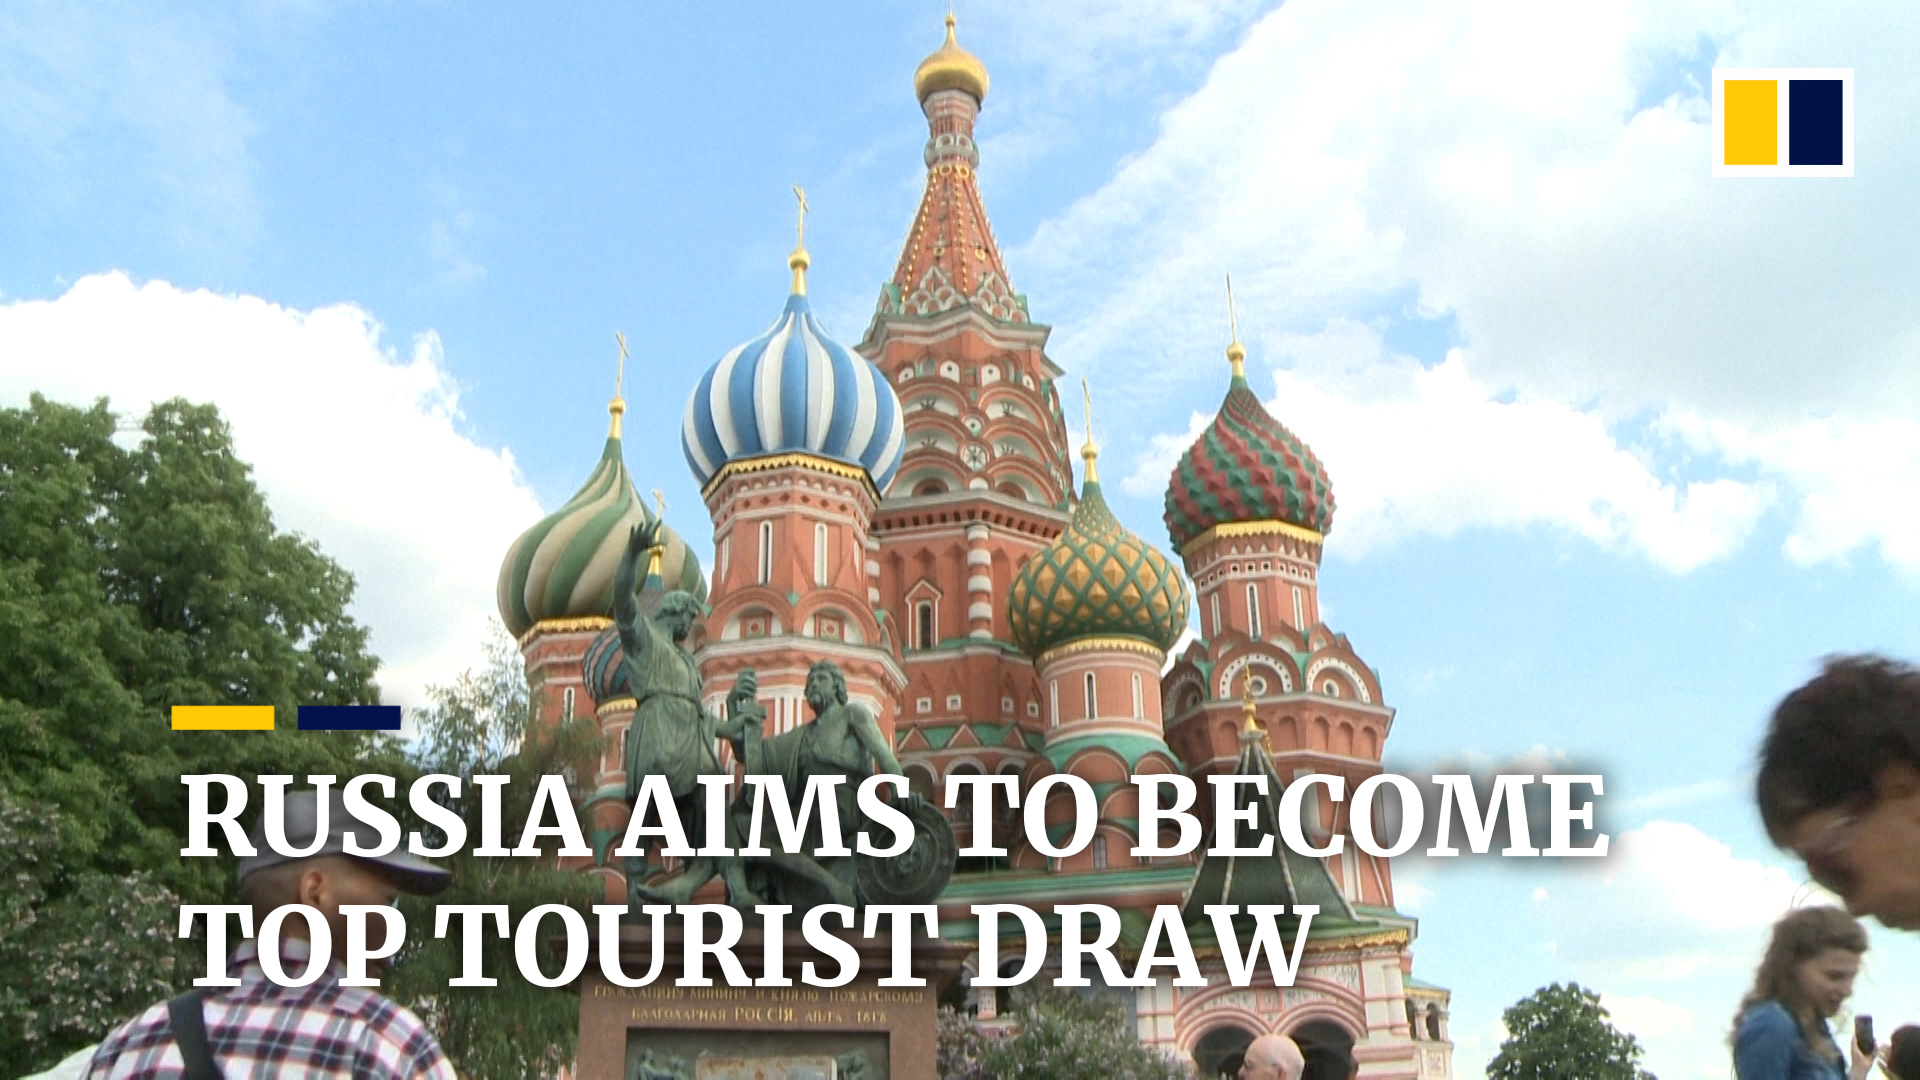 Russia eases visa restrictions to attract more tourists, with goal